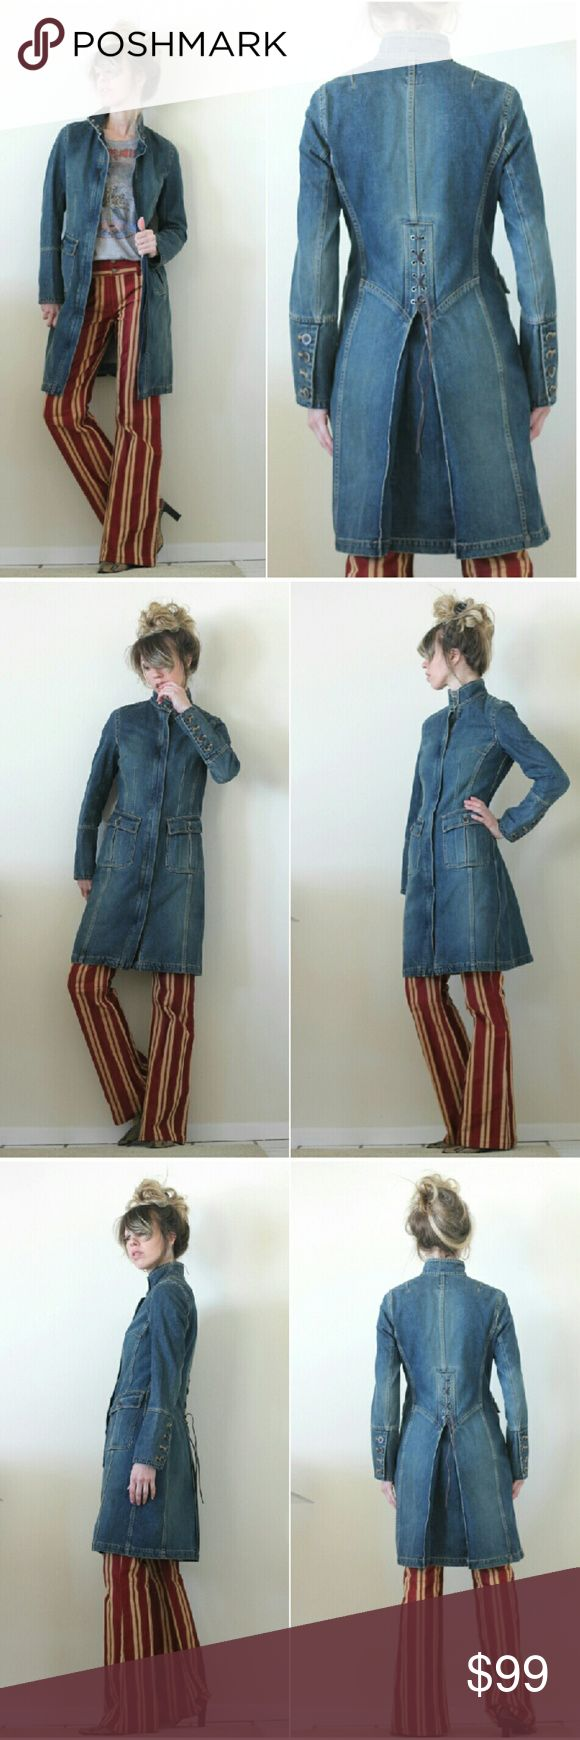 """💙 Denim Duster Coat Gap Military Style Jacket SALE Coolest GAP jean fitted coat amazing close fit - corset detail on the back  Four button cuff & zip front. really well made w/ great details, seaming, pockets & a nice weight to it.  GAP tag size small 100% cotton  Est. size S shown on 5'8"""" size 4 (approx 32d-25-35) and it?s a great fit so if your measurements are similar, should be a good fit or use for ref if you want a looser or more snug fit.  very nice preloved/ vintage condition, no…"""